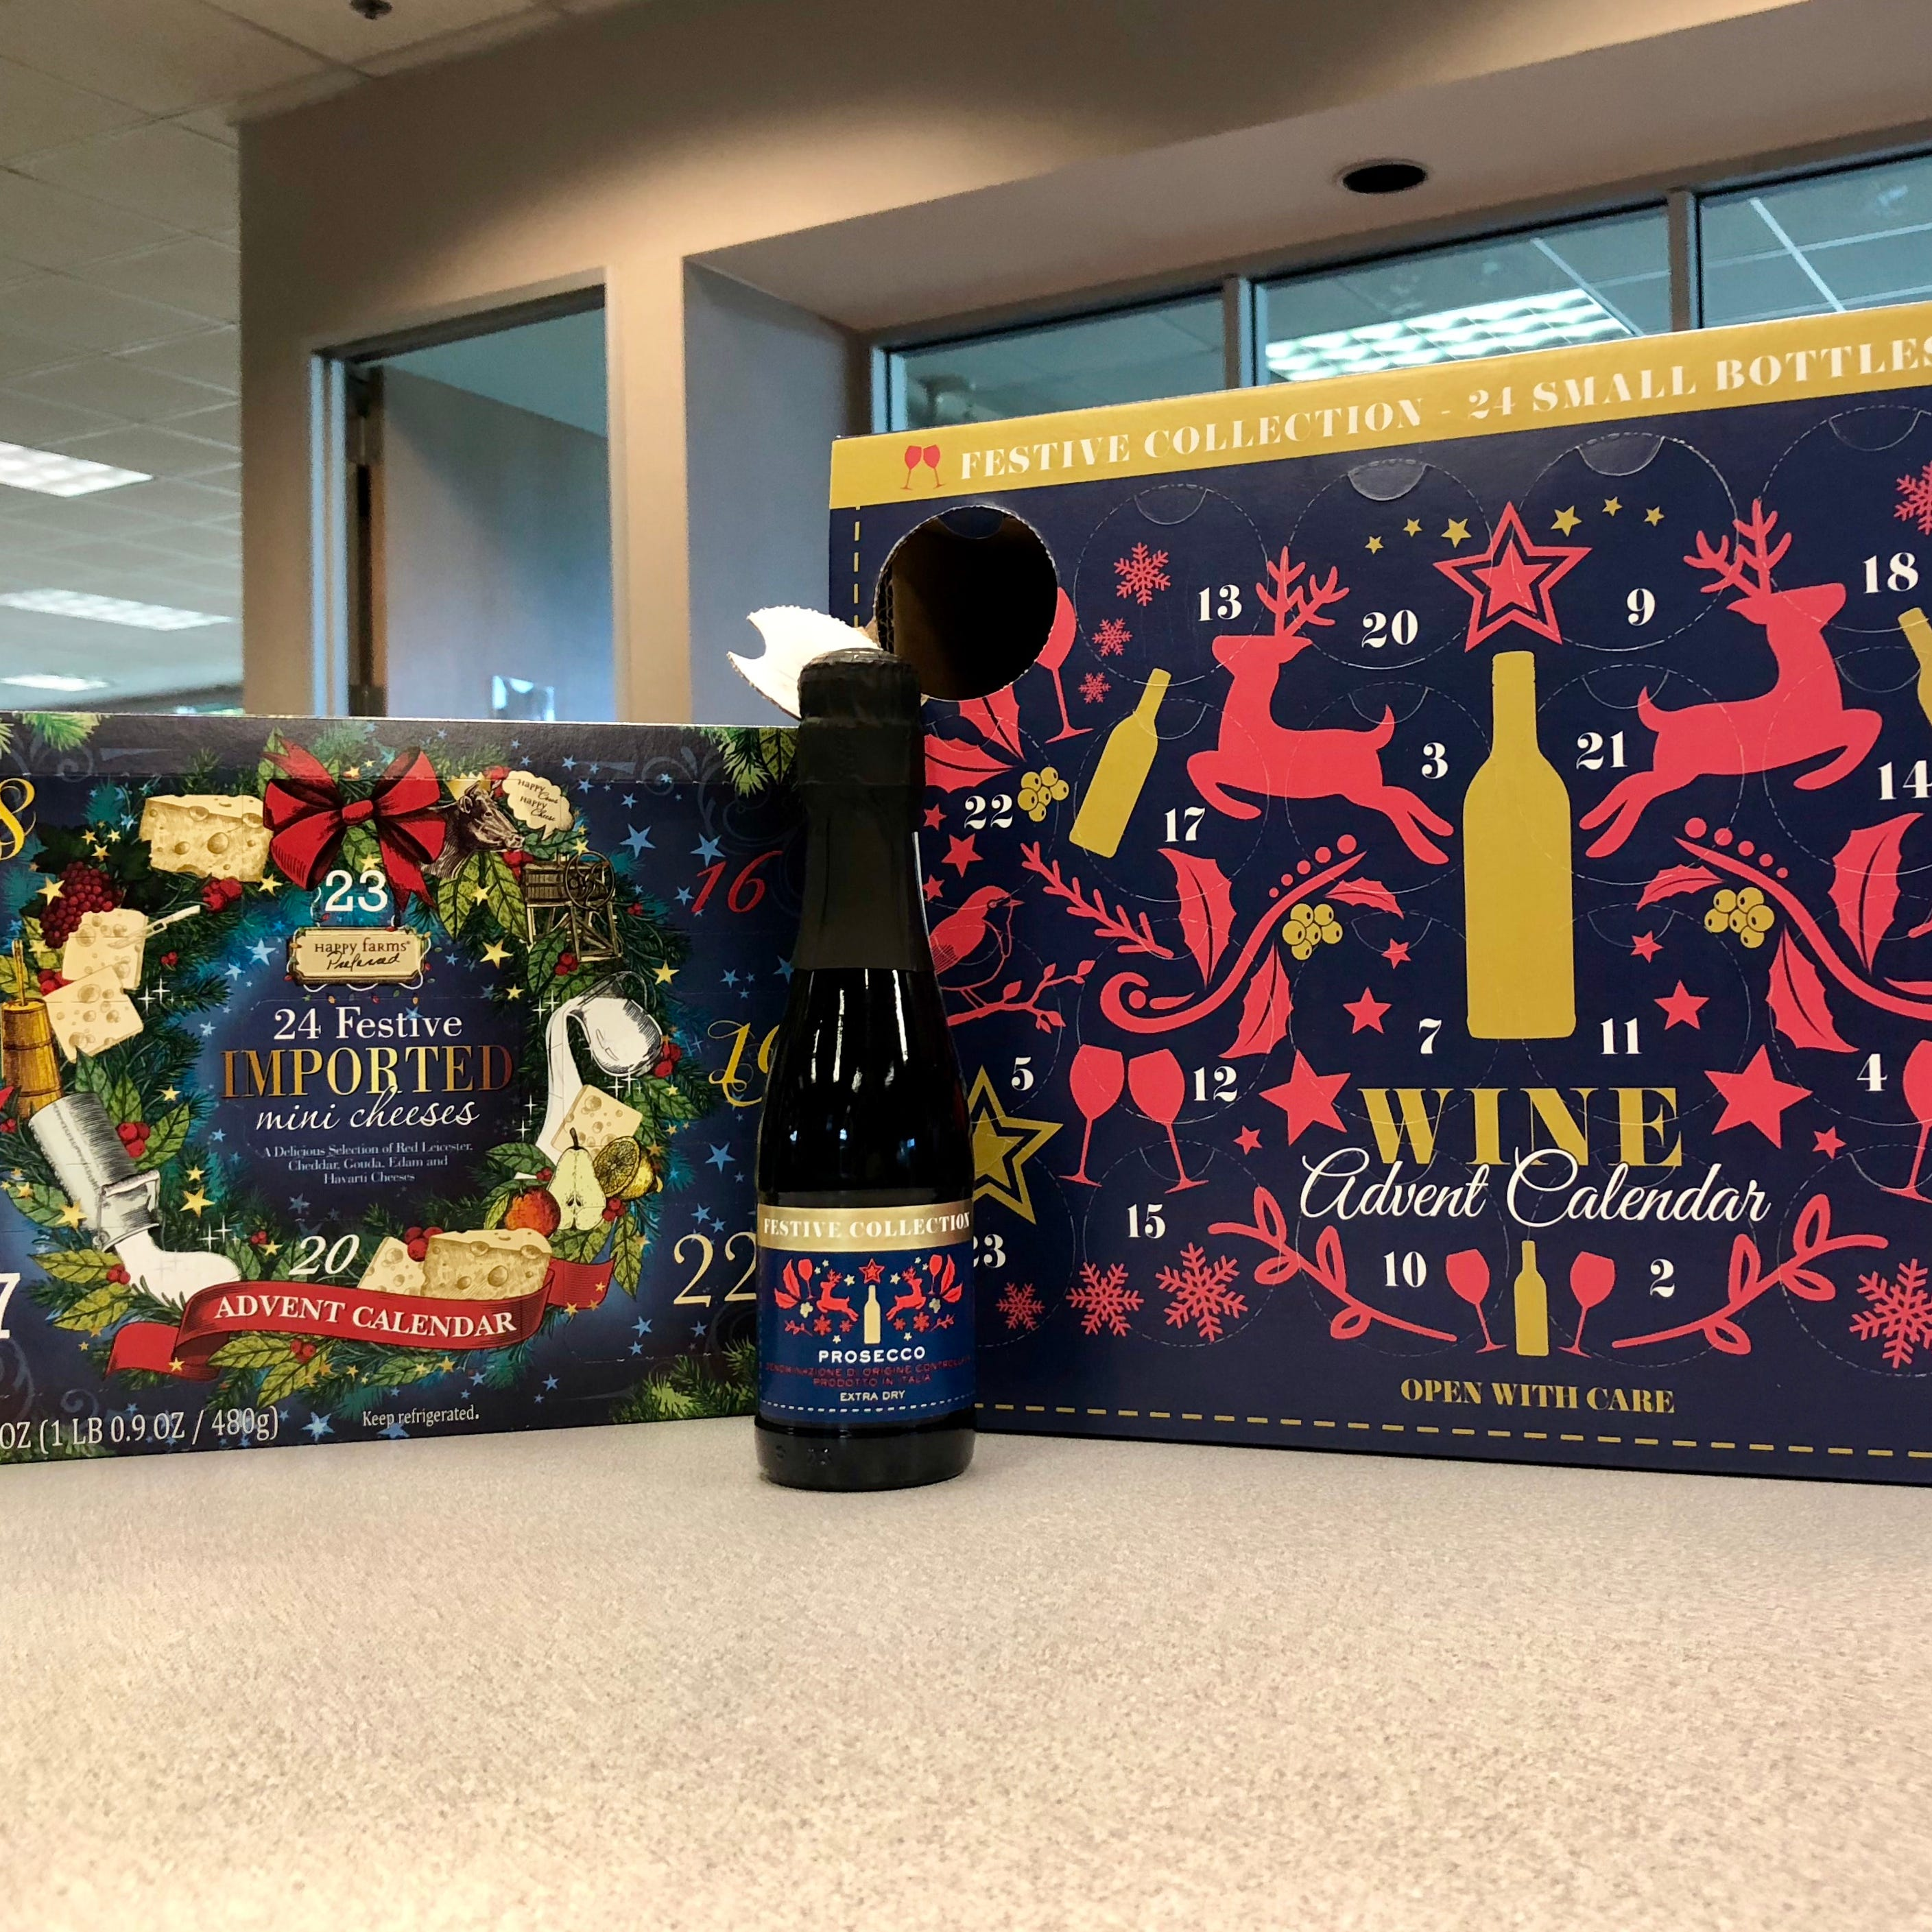 Aldi wine, cheese Advent calendars go fast but others still available at some locations